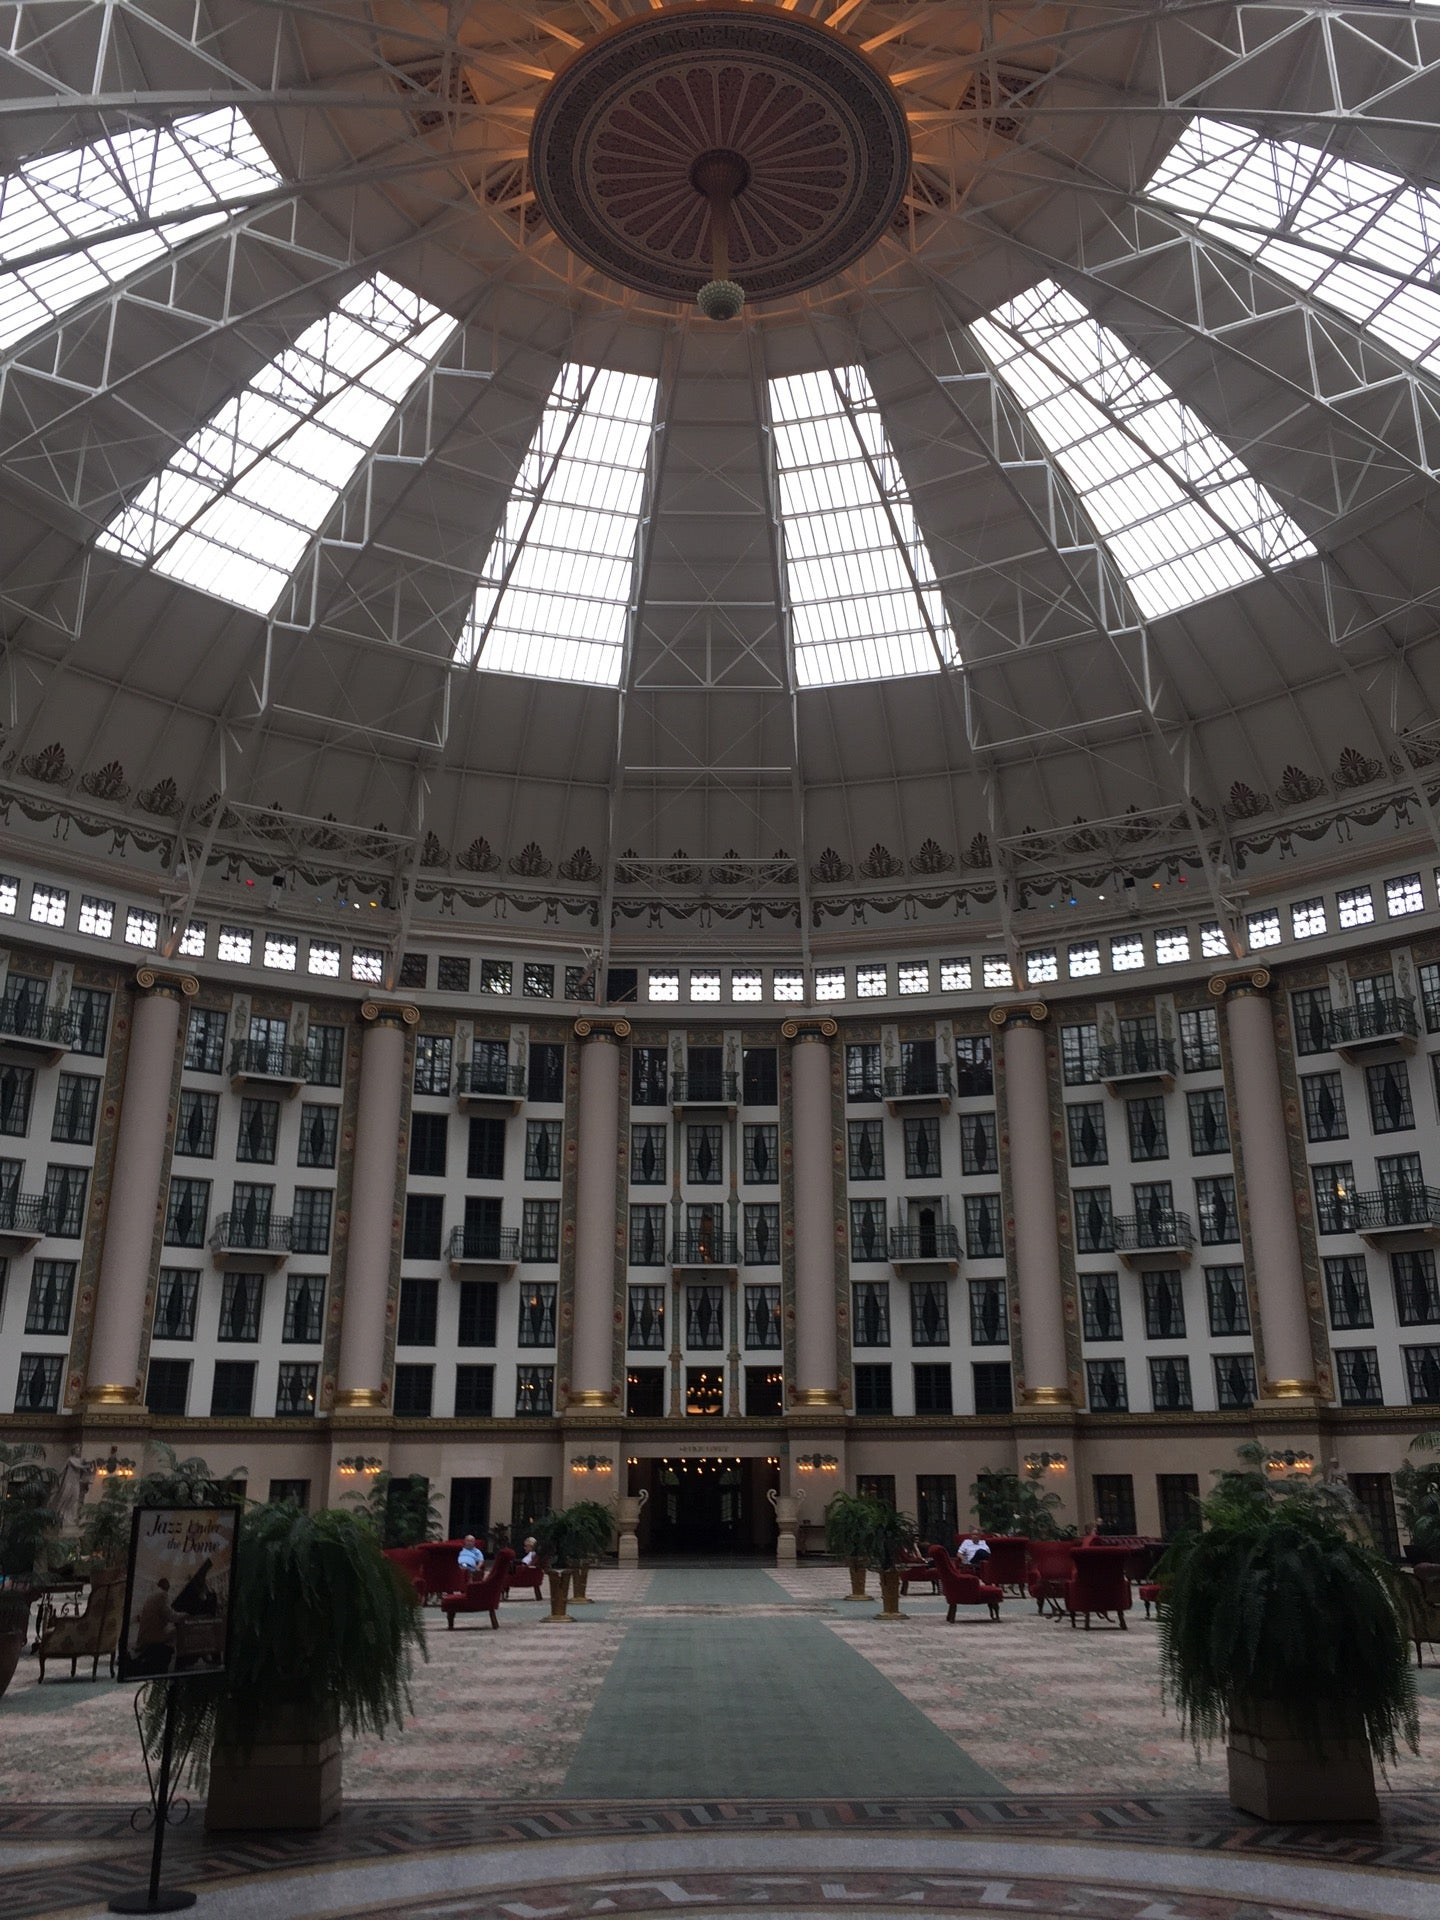 West Baden Springs Hotel,casino,dome,golf,hotel,resort,spa